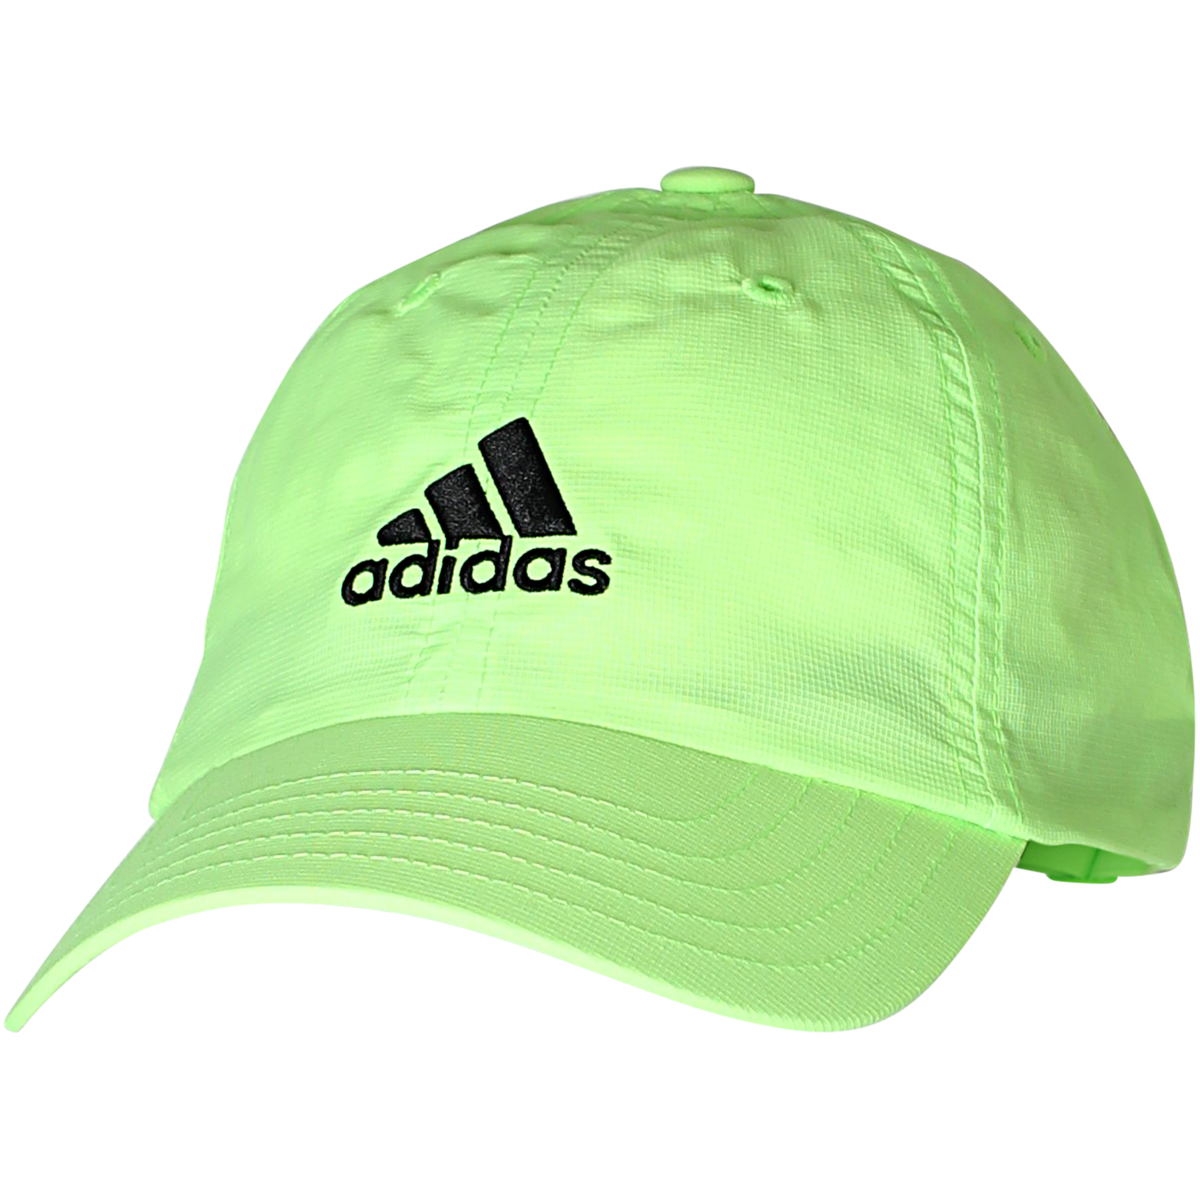 adidas - AEROREADY Badge of Sport Dad Kasket - Neon